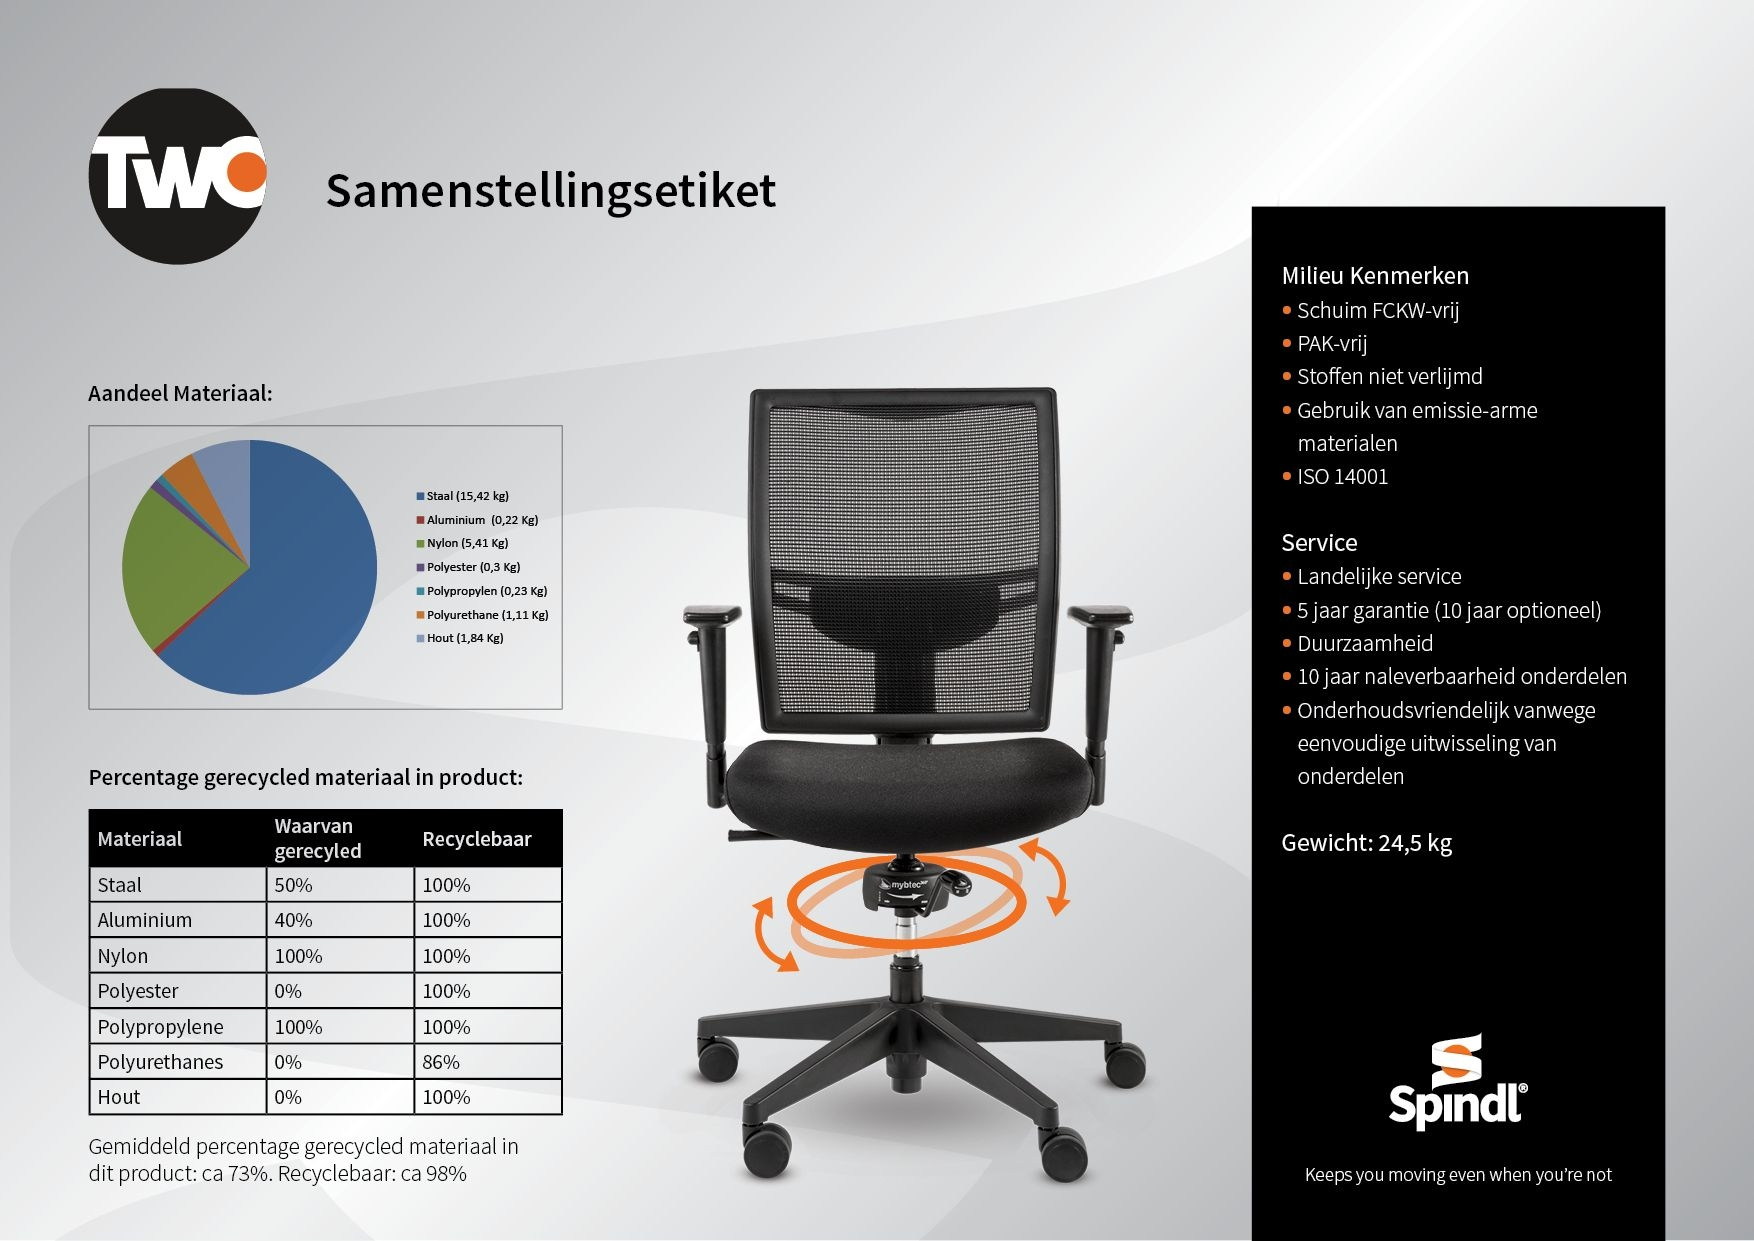 Spindl Two specificaties